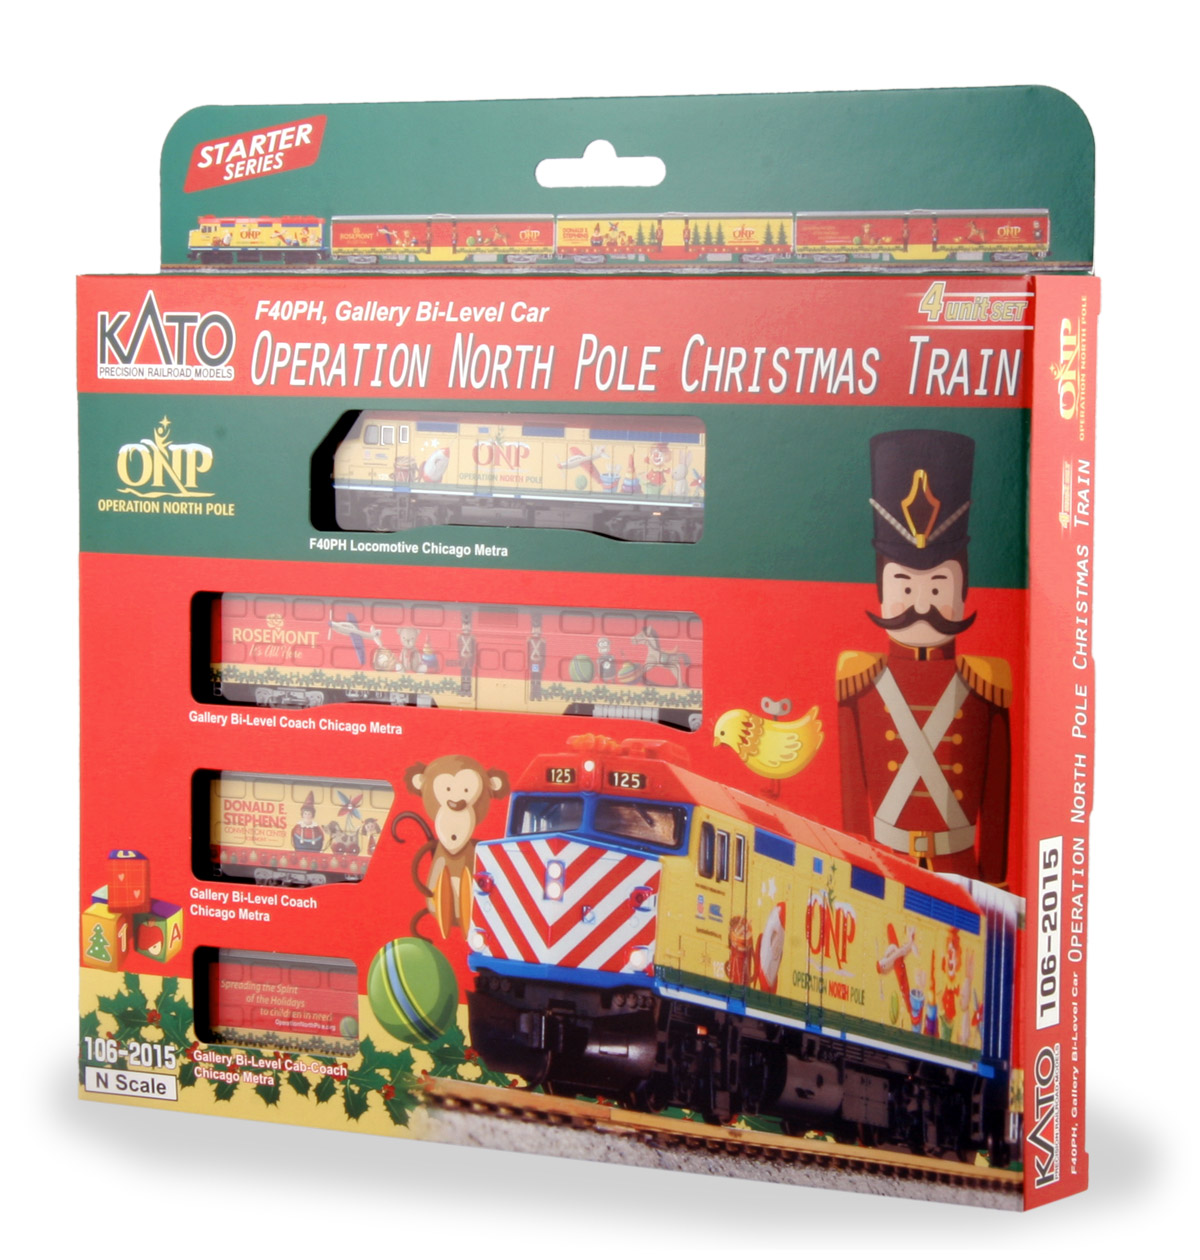 N Scale - Kato USA - 106-2015 - Christmas Train F40PH with 3 Cars - Operation North Pole - 2015 Version